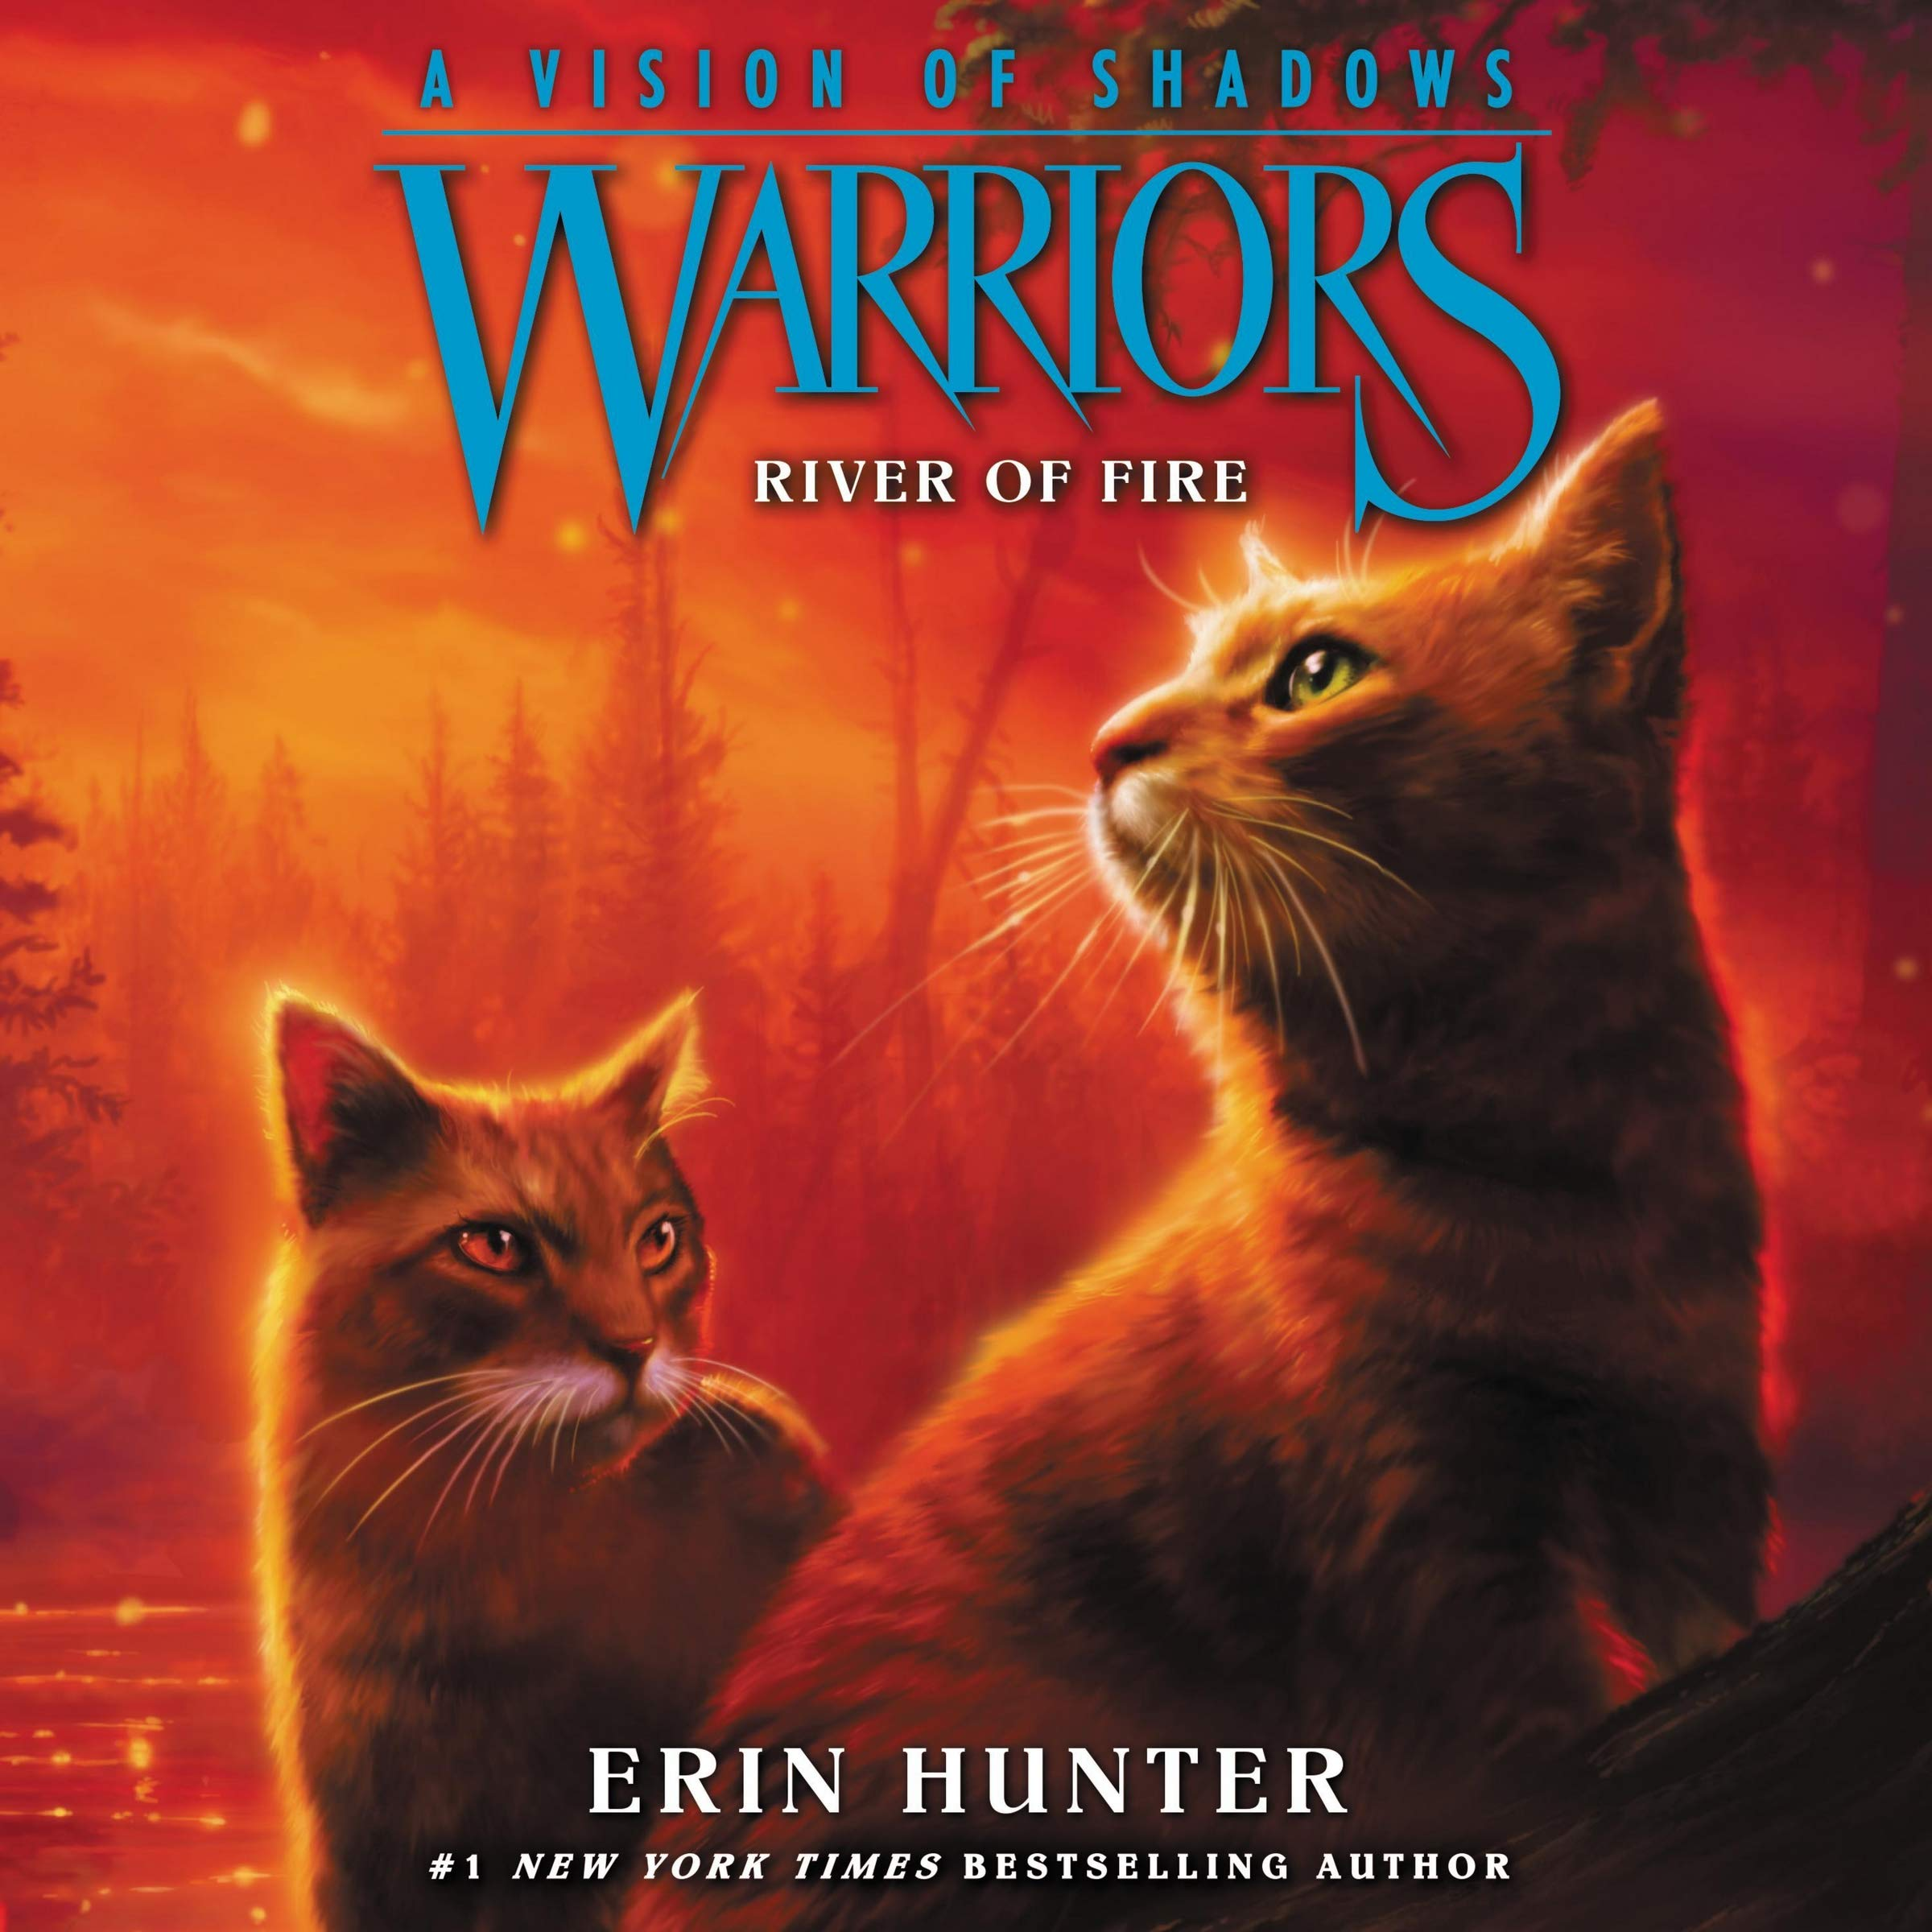 Warriors: A Vision of Shadows #5: River of Fire: Warriors: A Vision of Shadows Series, book 5: Erin Hunter: 9781982610548: Amazon.com: Books